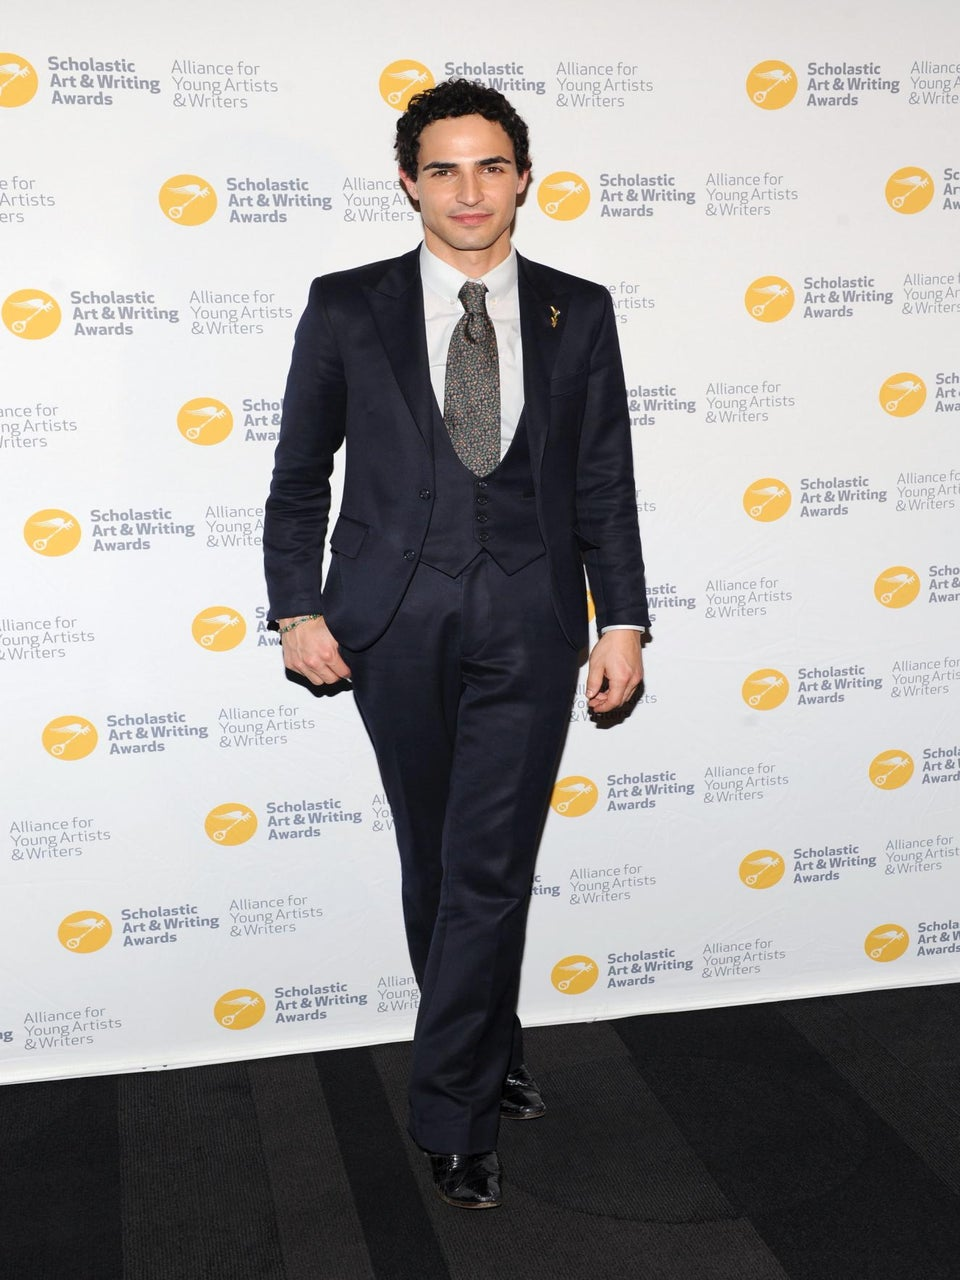 5 Questions With Zac Posen